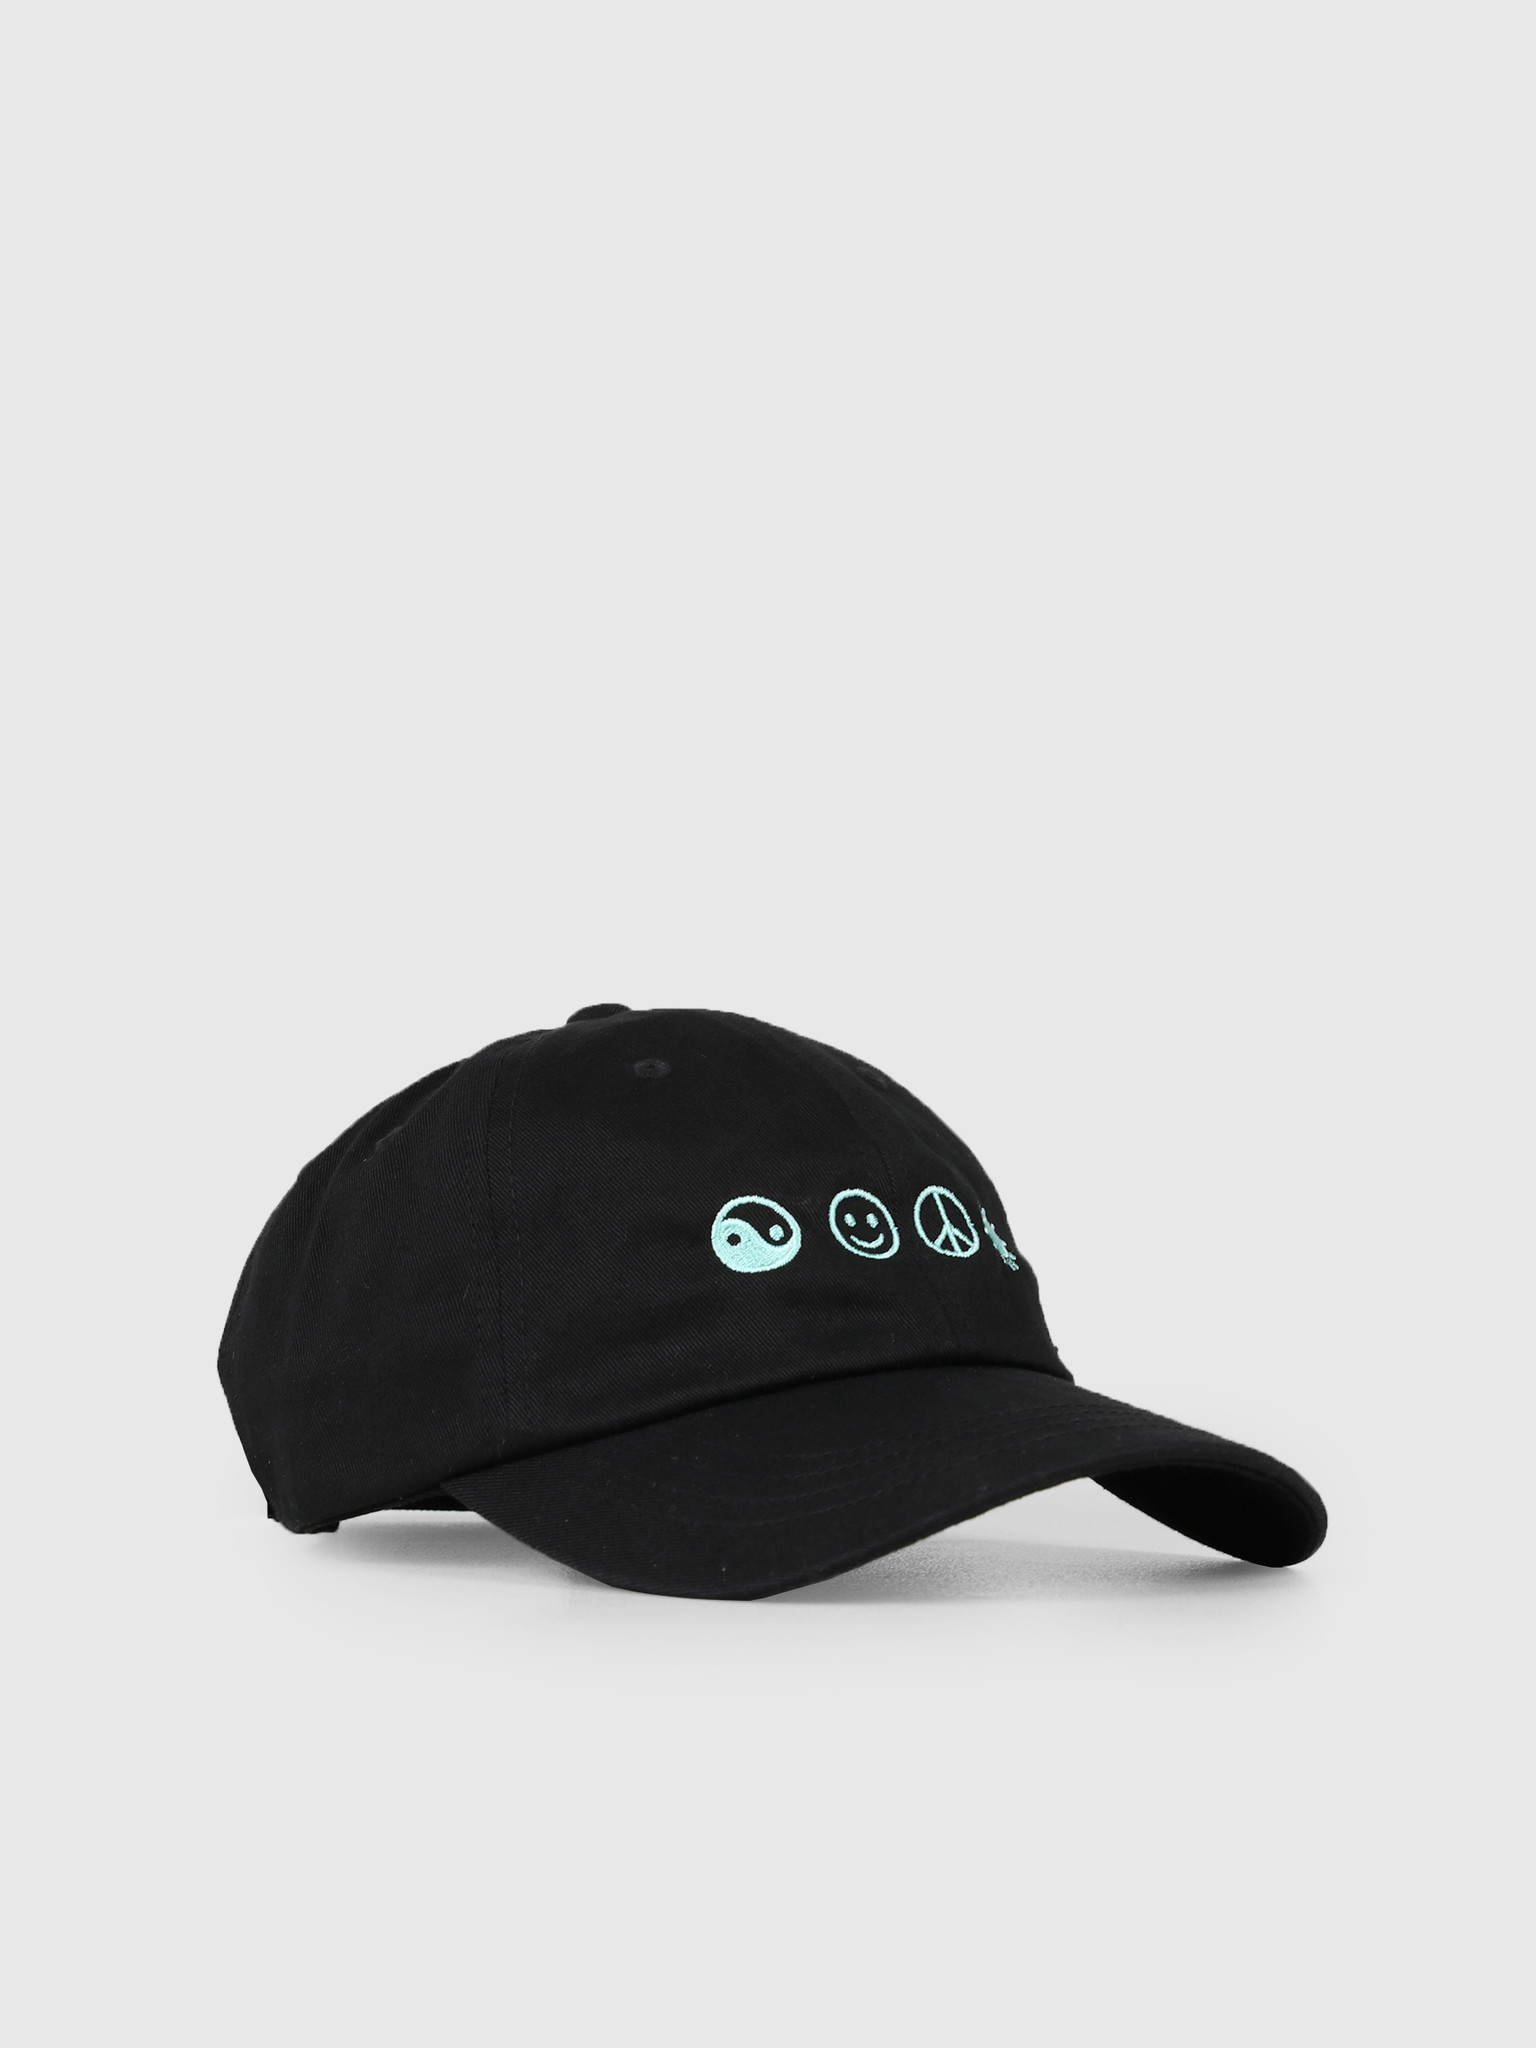 The Quiet Life The Quiet Life World Peace Dad Hat Black 19SPD2-2202-BLK-OS